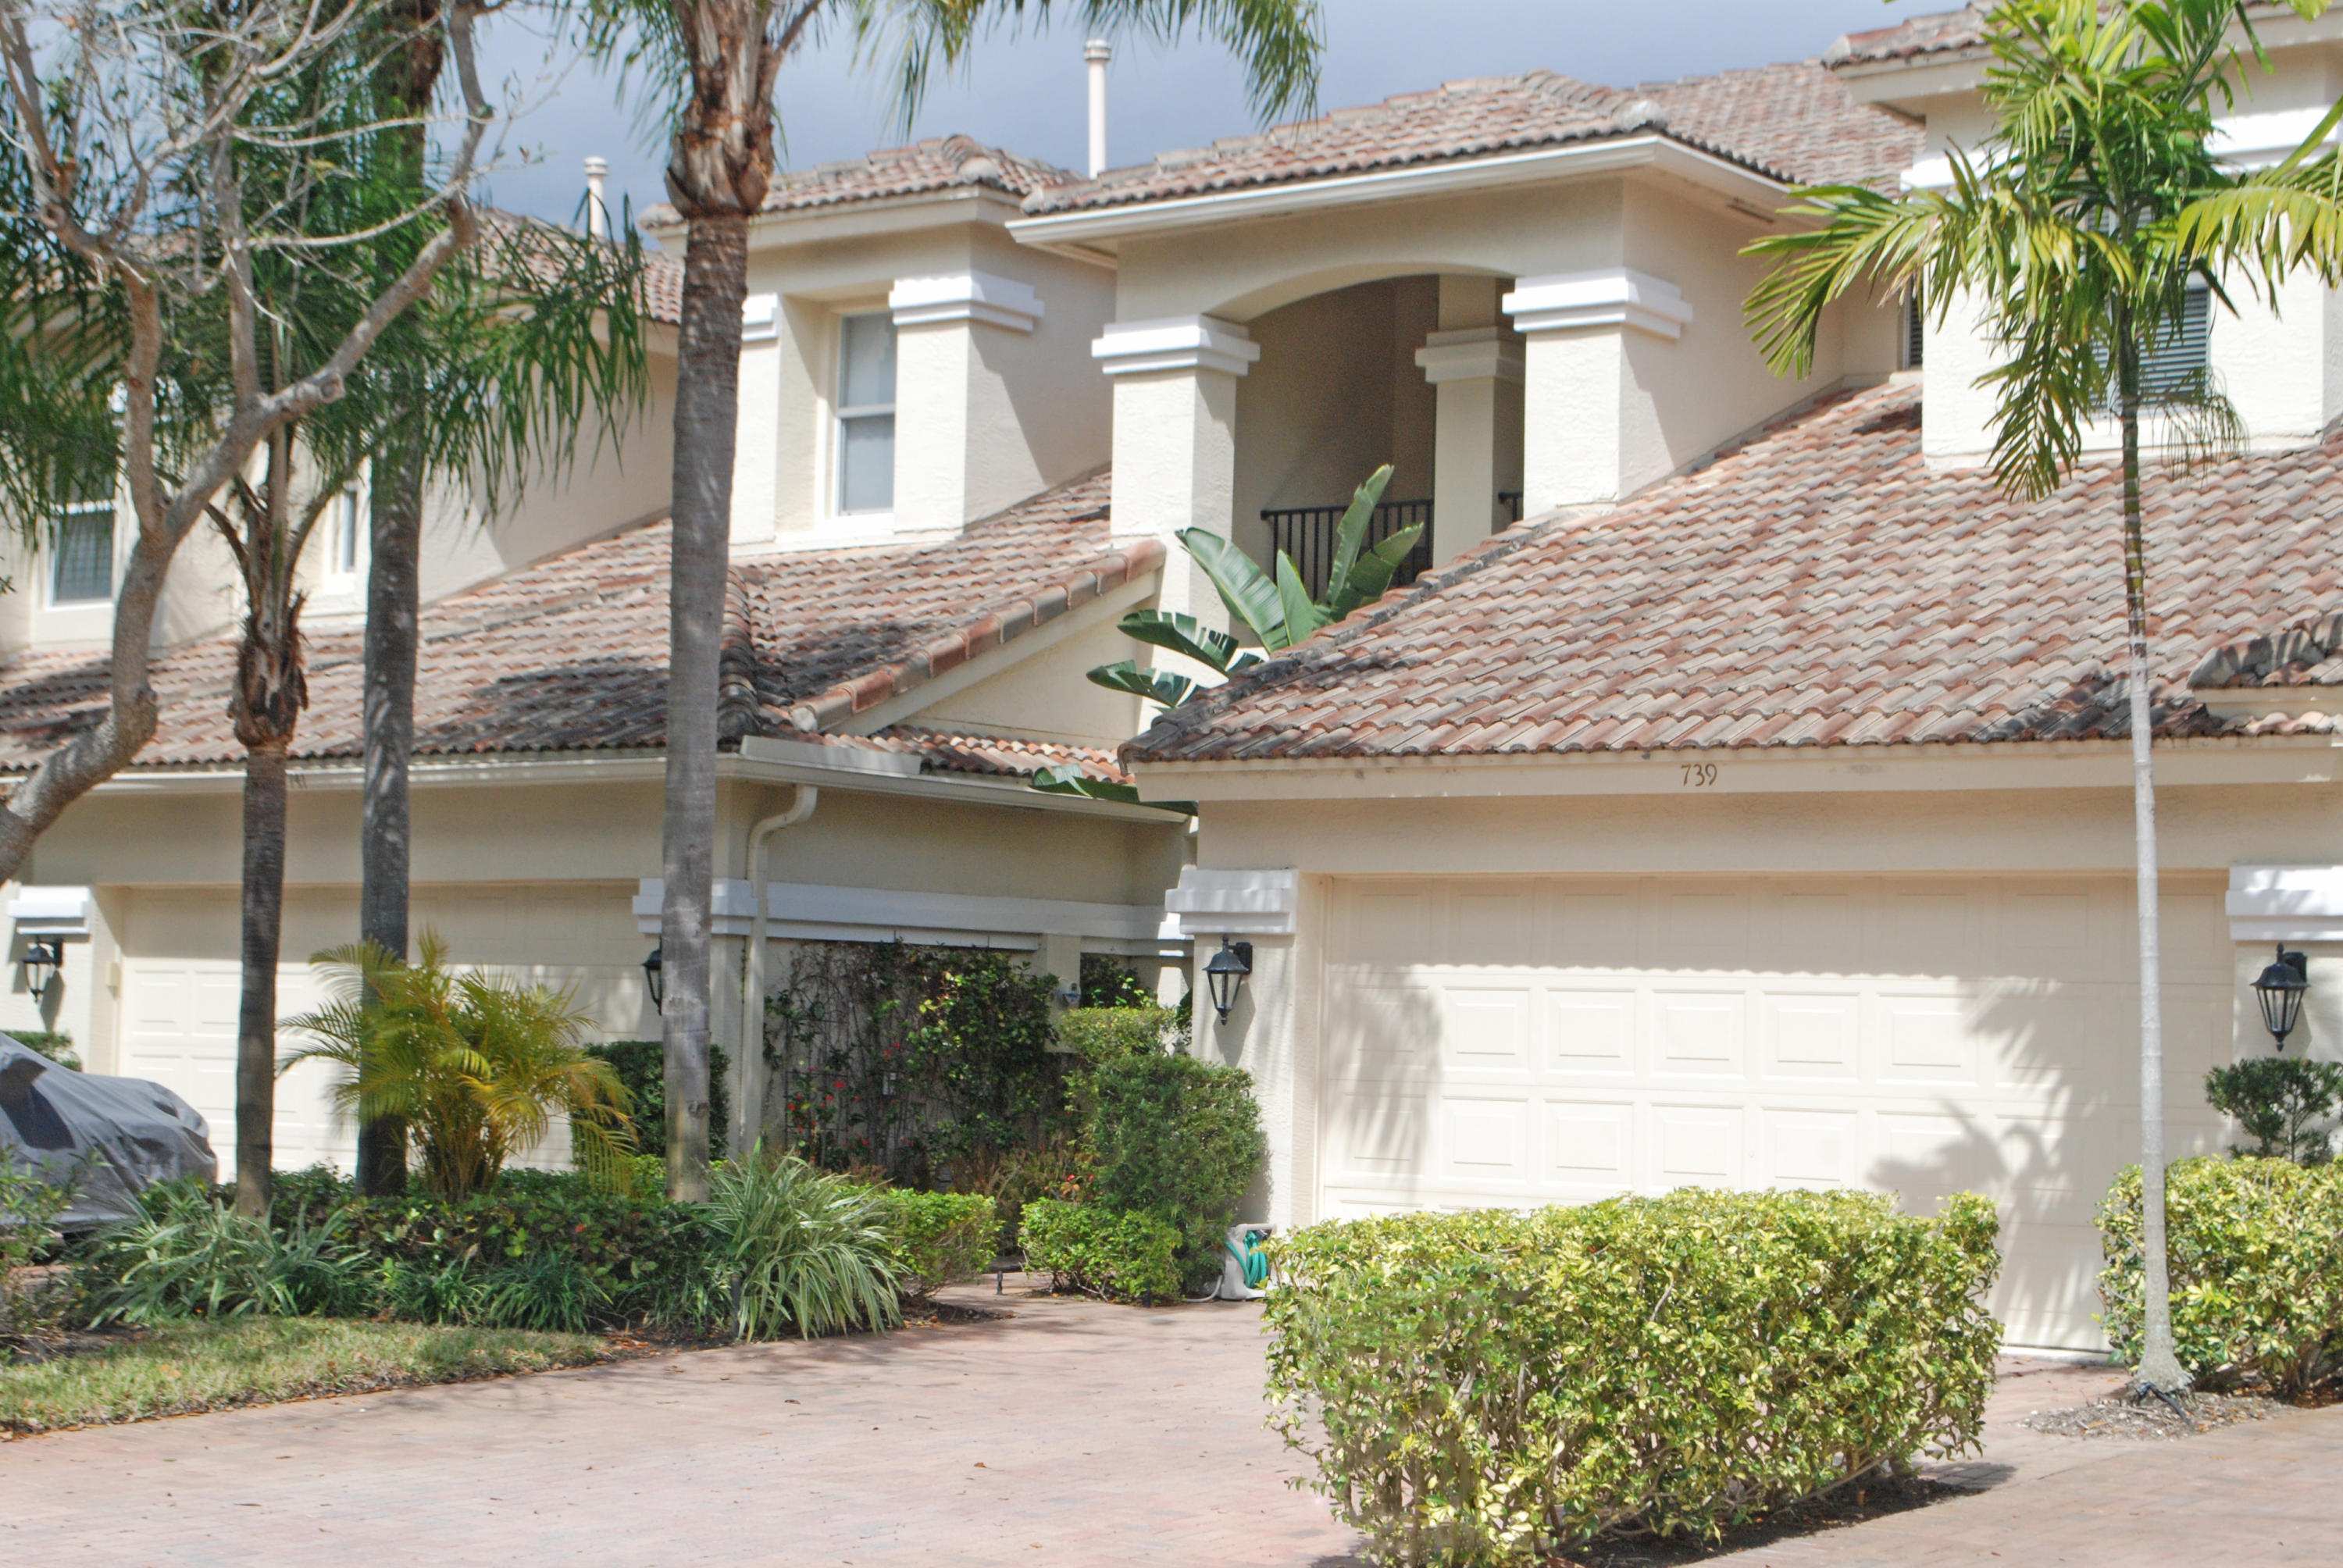 739 Cable Beach Lane, North Palm Beach, Florida 33410, 3 Bedrooms Bedrooms, ,2.1 BathroomsBathrooms,A,Townhouse,Cable Beach,RX-10515562